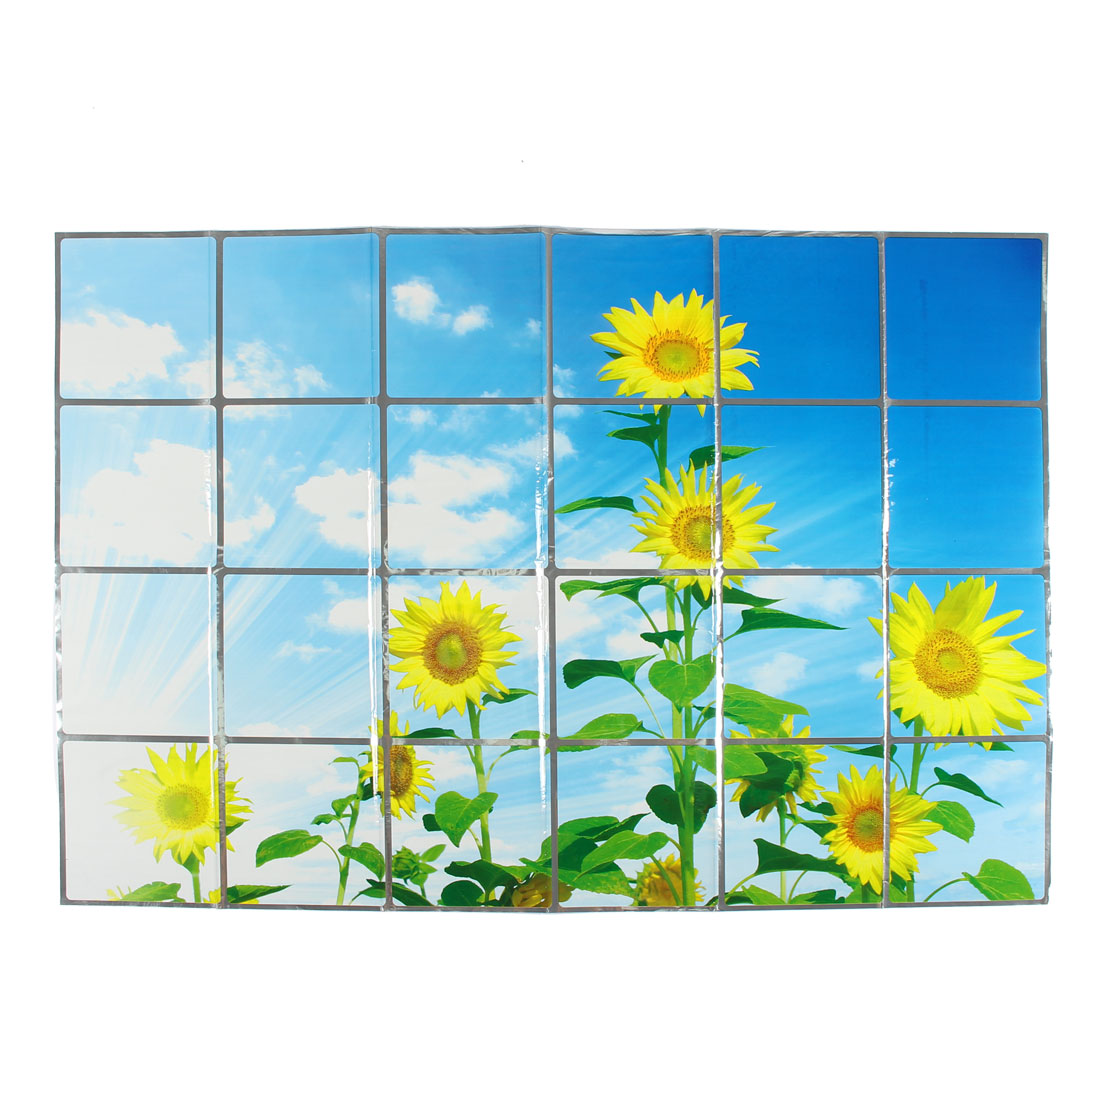 Kitchen Sunflowers Pattern Removable Self-adhesive Oilproof Wall Window Sticker 90 x 60cm